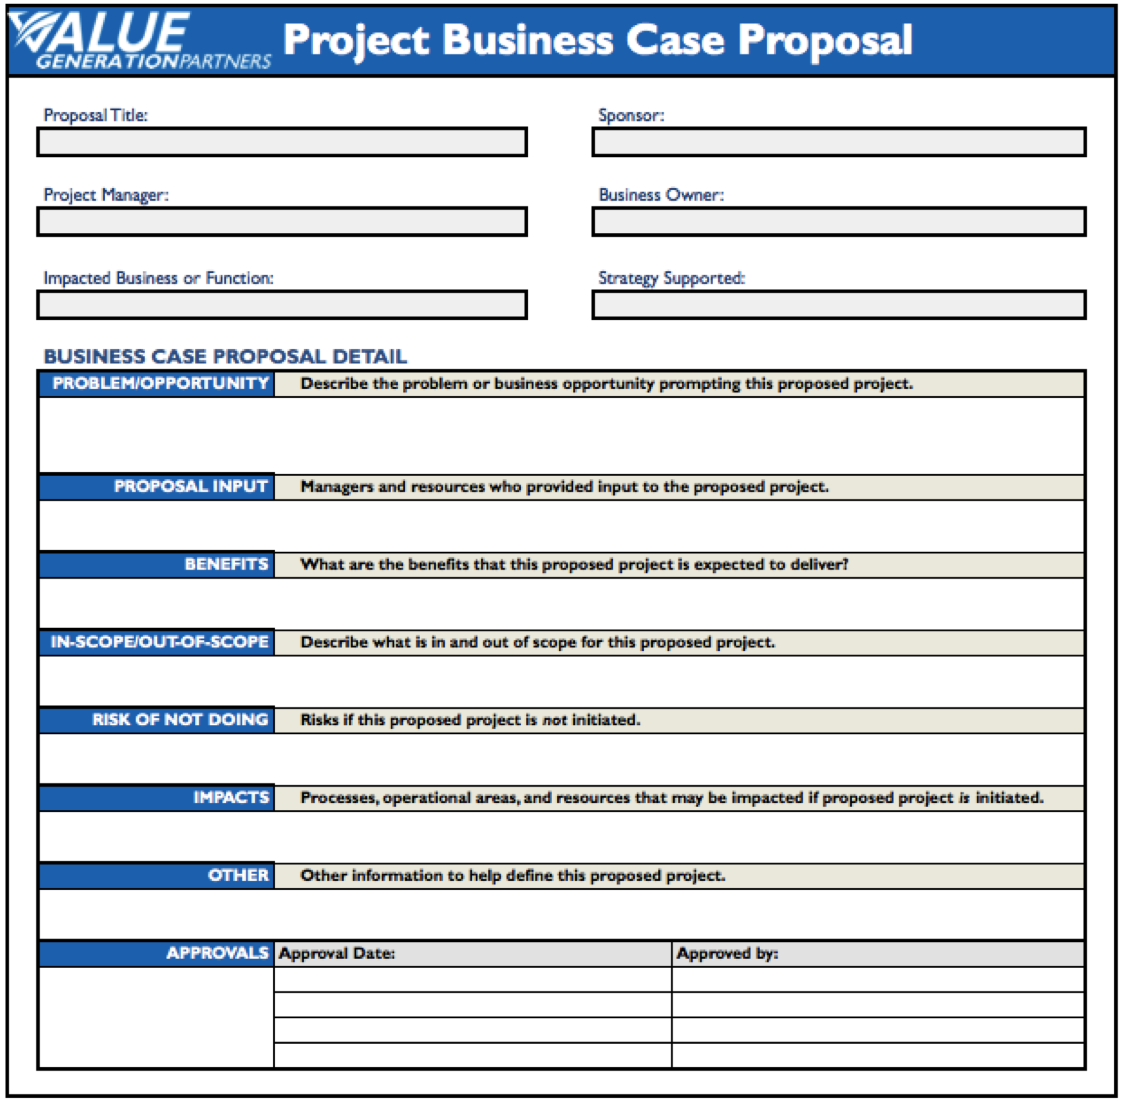 Regardless of your project business case proposal template format regardless of your project business case proposal template format wdtpcn00 cheaphphosting Images